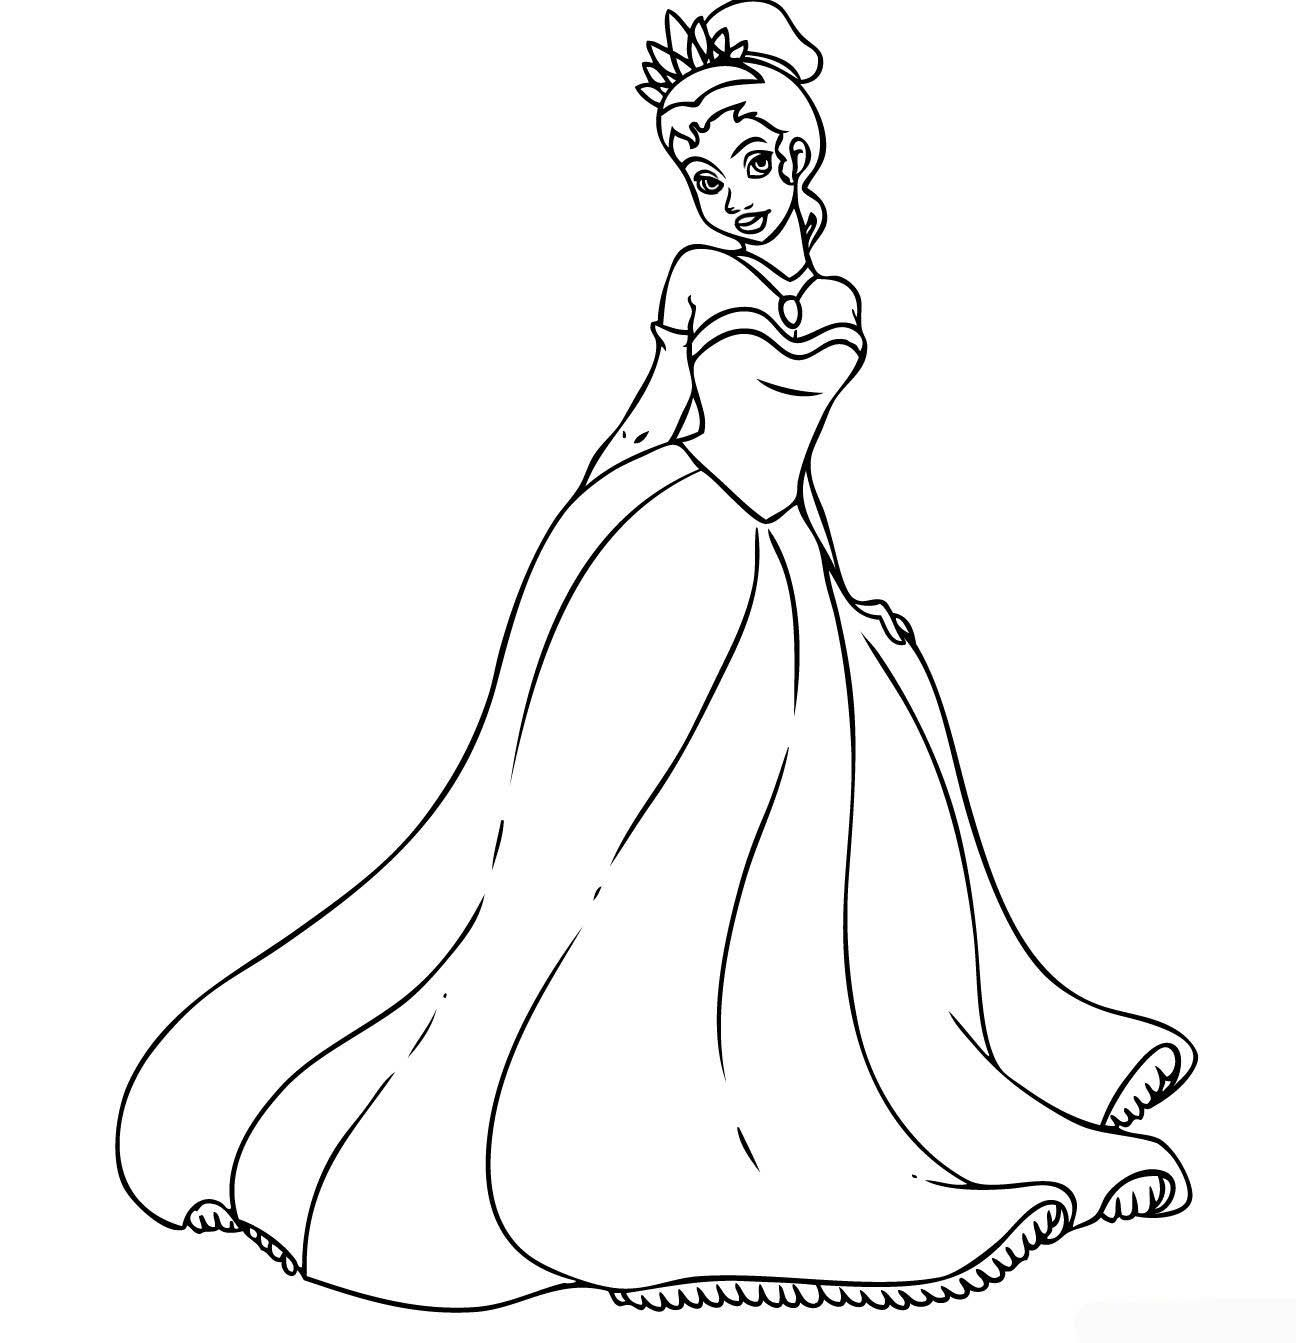 Disney Princess Dress Up Coloring Pages Desenhos Desenhos Para